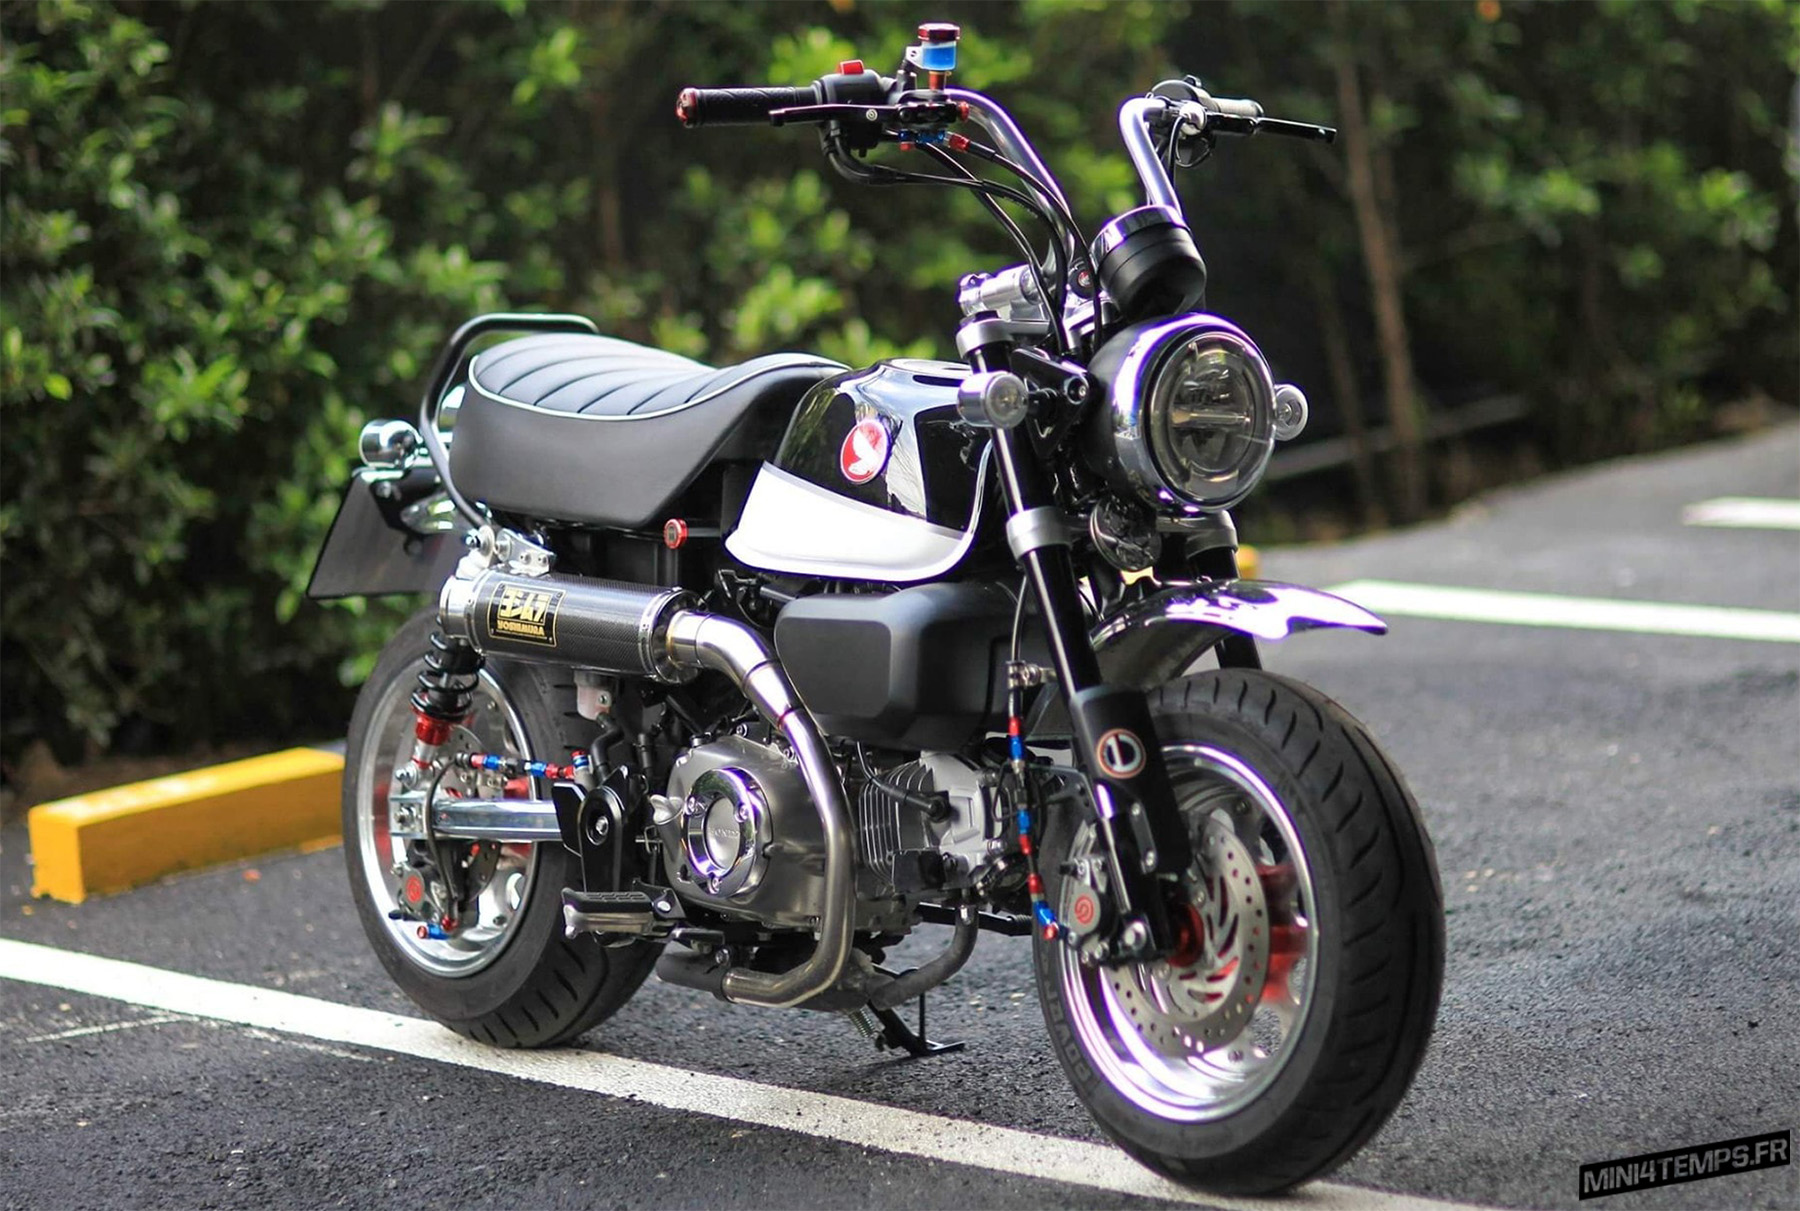 Le Honda Monkey 125 Black de X-Paint Shop - mini4temps.fr